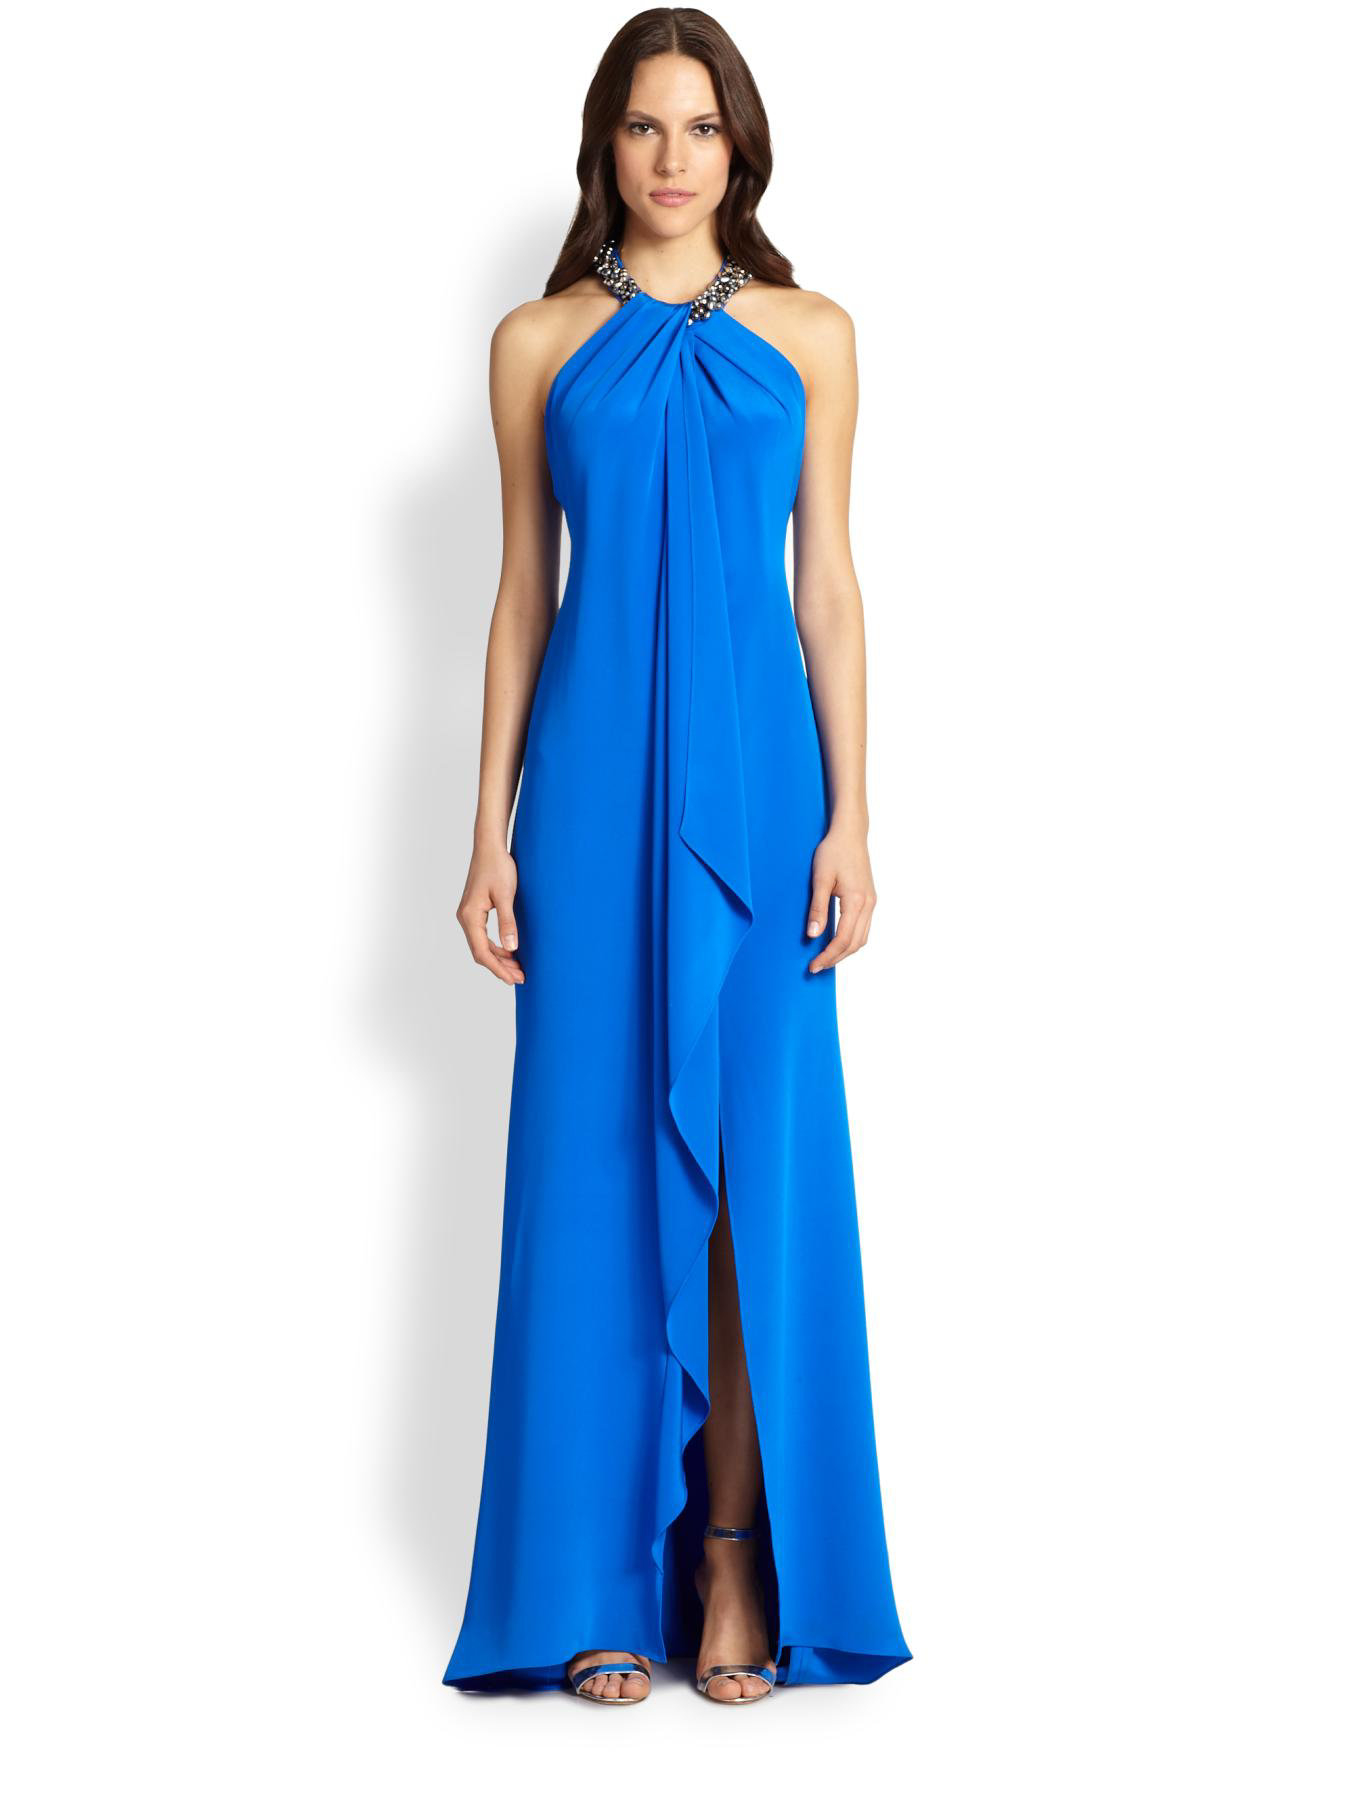 Lyst - Carmen Marc Valvo Toga Necklace Gown in Blue